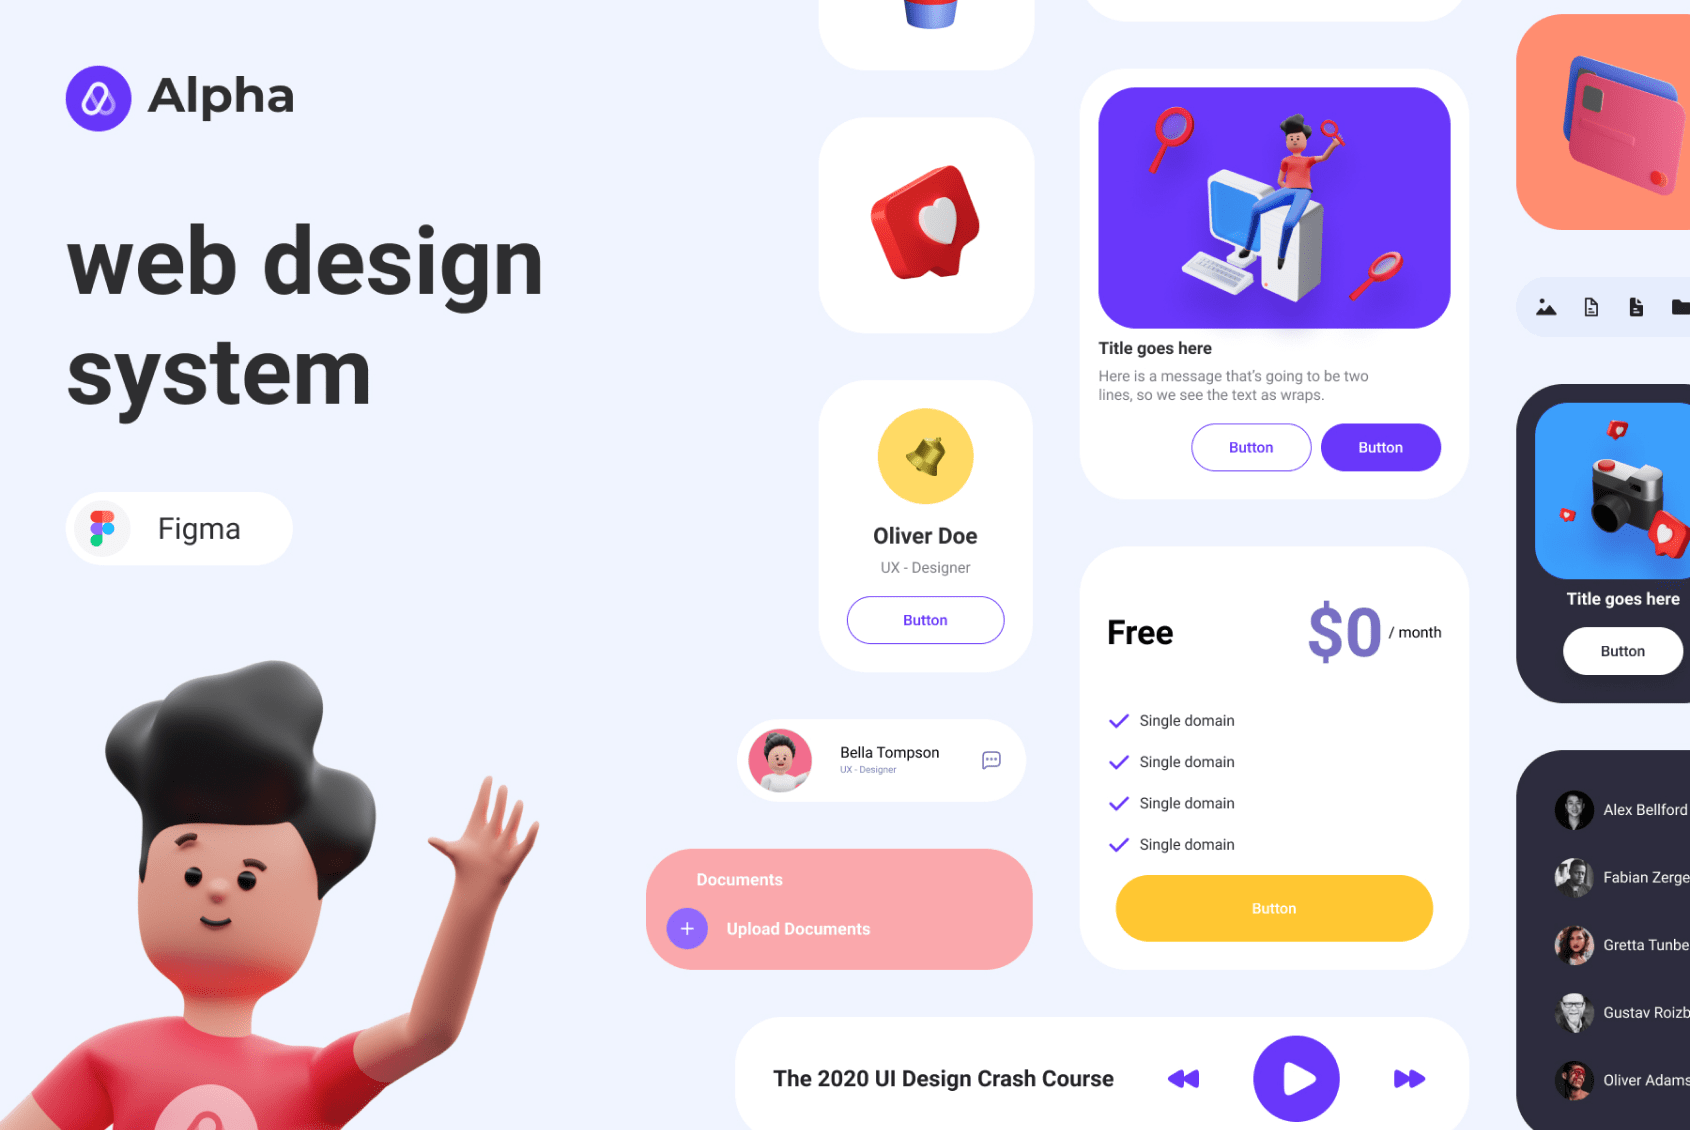 Design System with 3D Illustrations